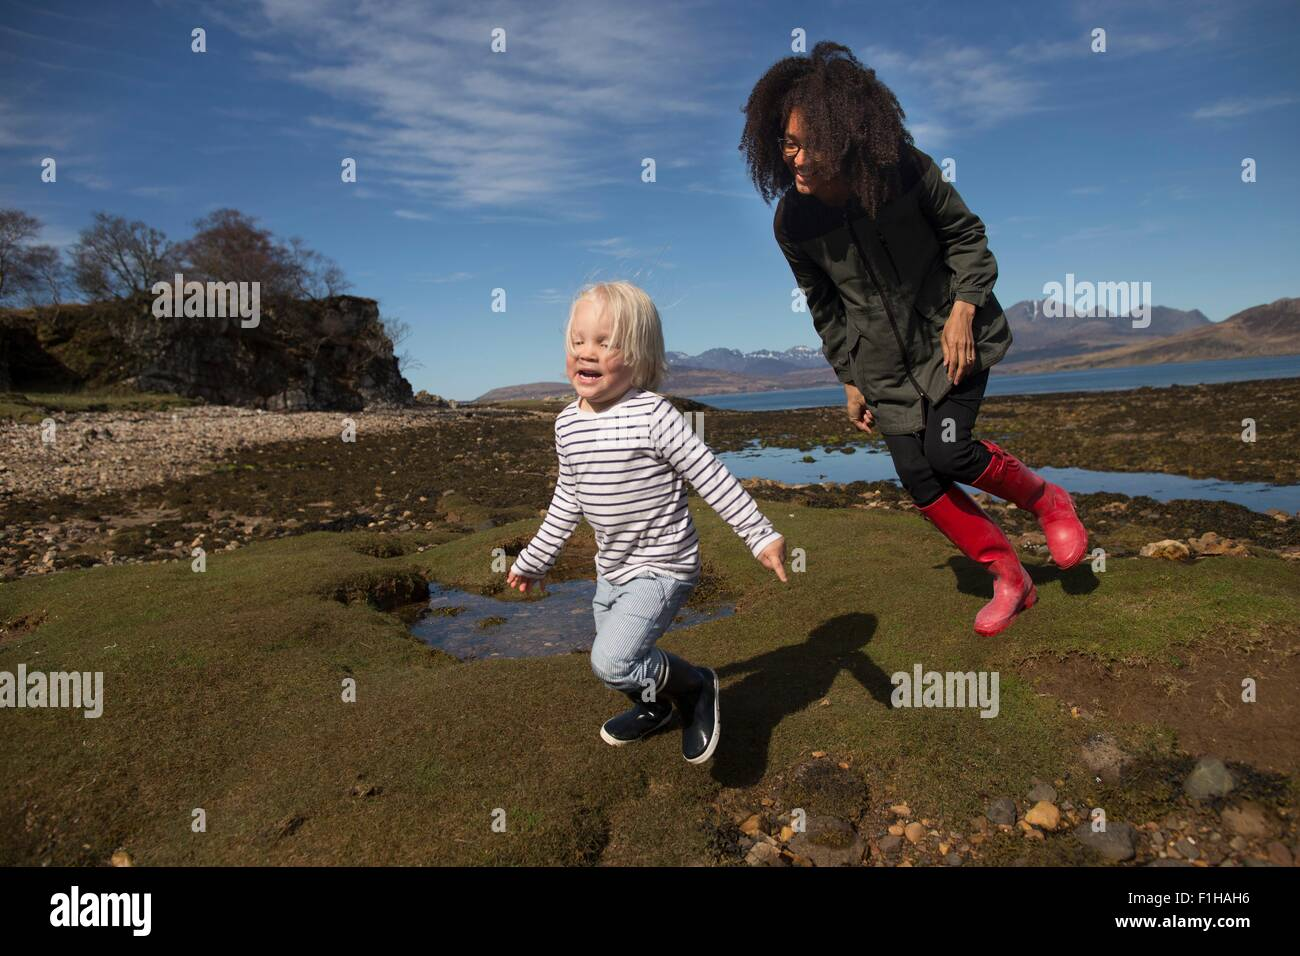 Mother and son running on grass - Stock Image